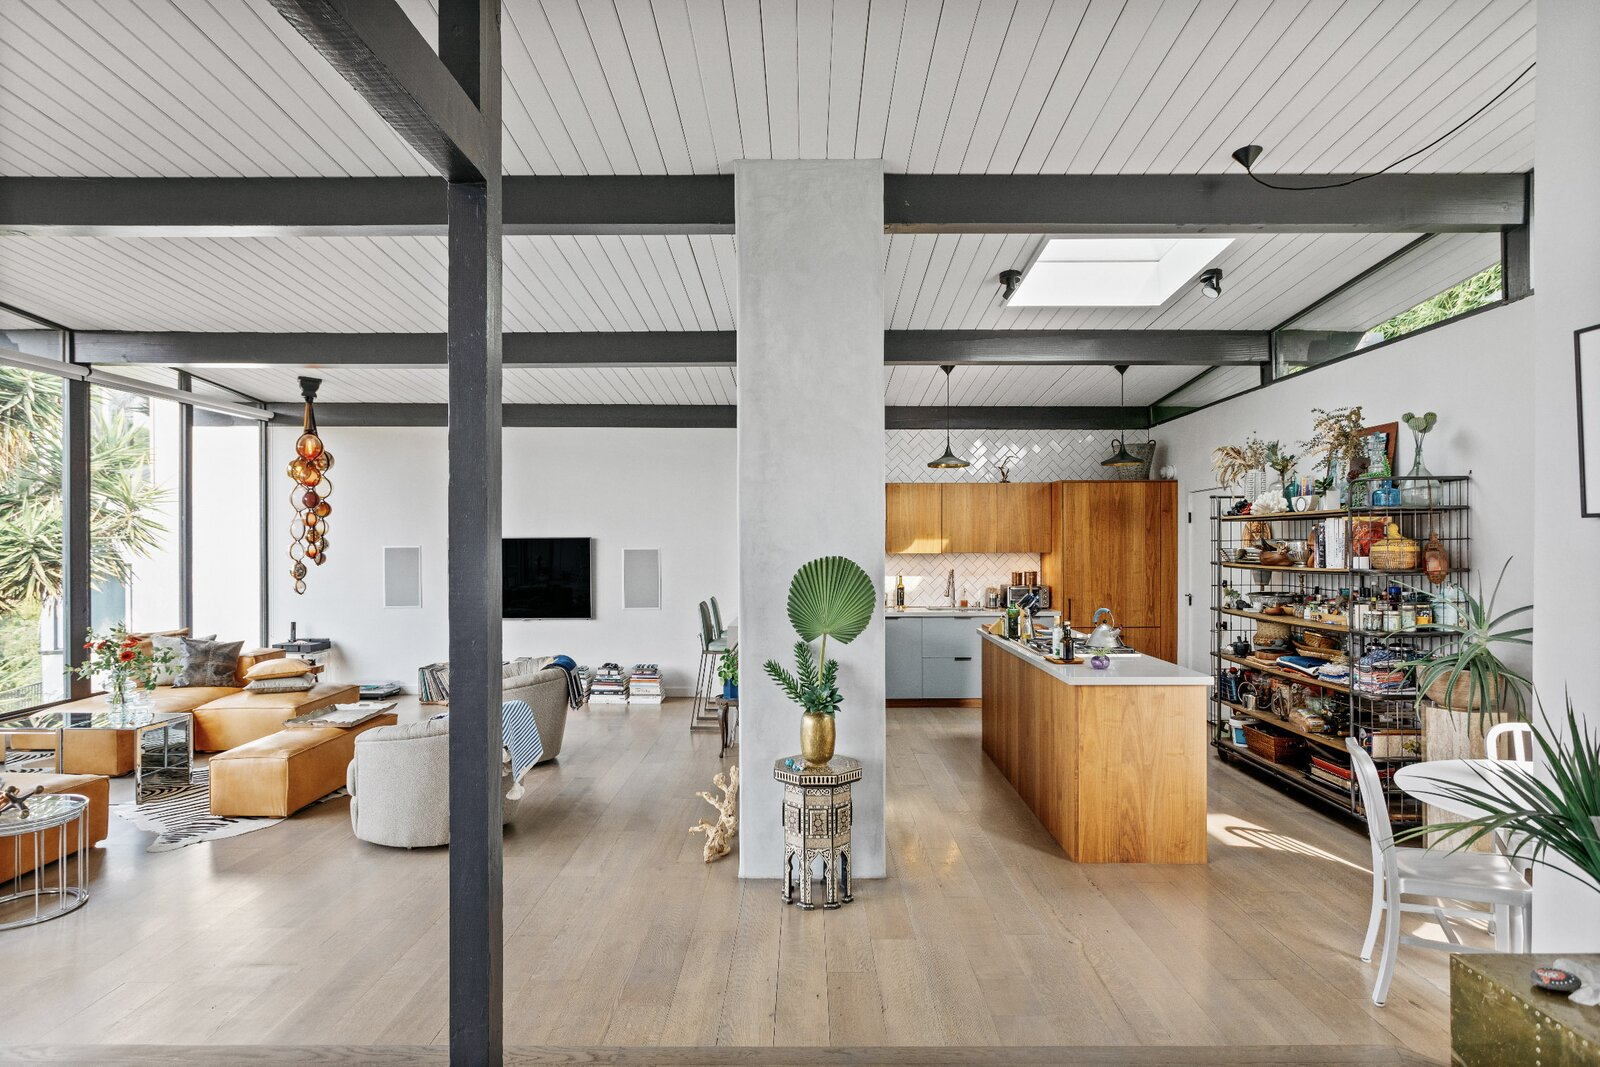 Viewed from the dining area, the kitchen features a central island and wood cabinets.  Photo 5 of 16 in Raised on Stilts, a $2.5M Midcentury in Los Angeles Captures Beguiling Views